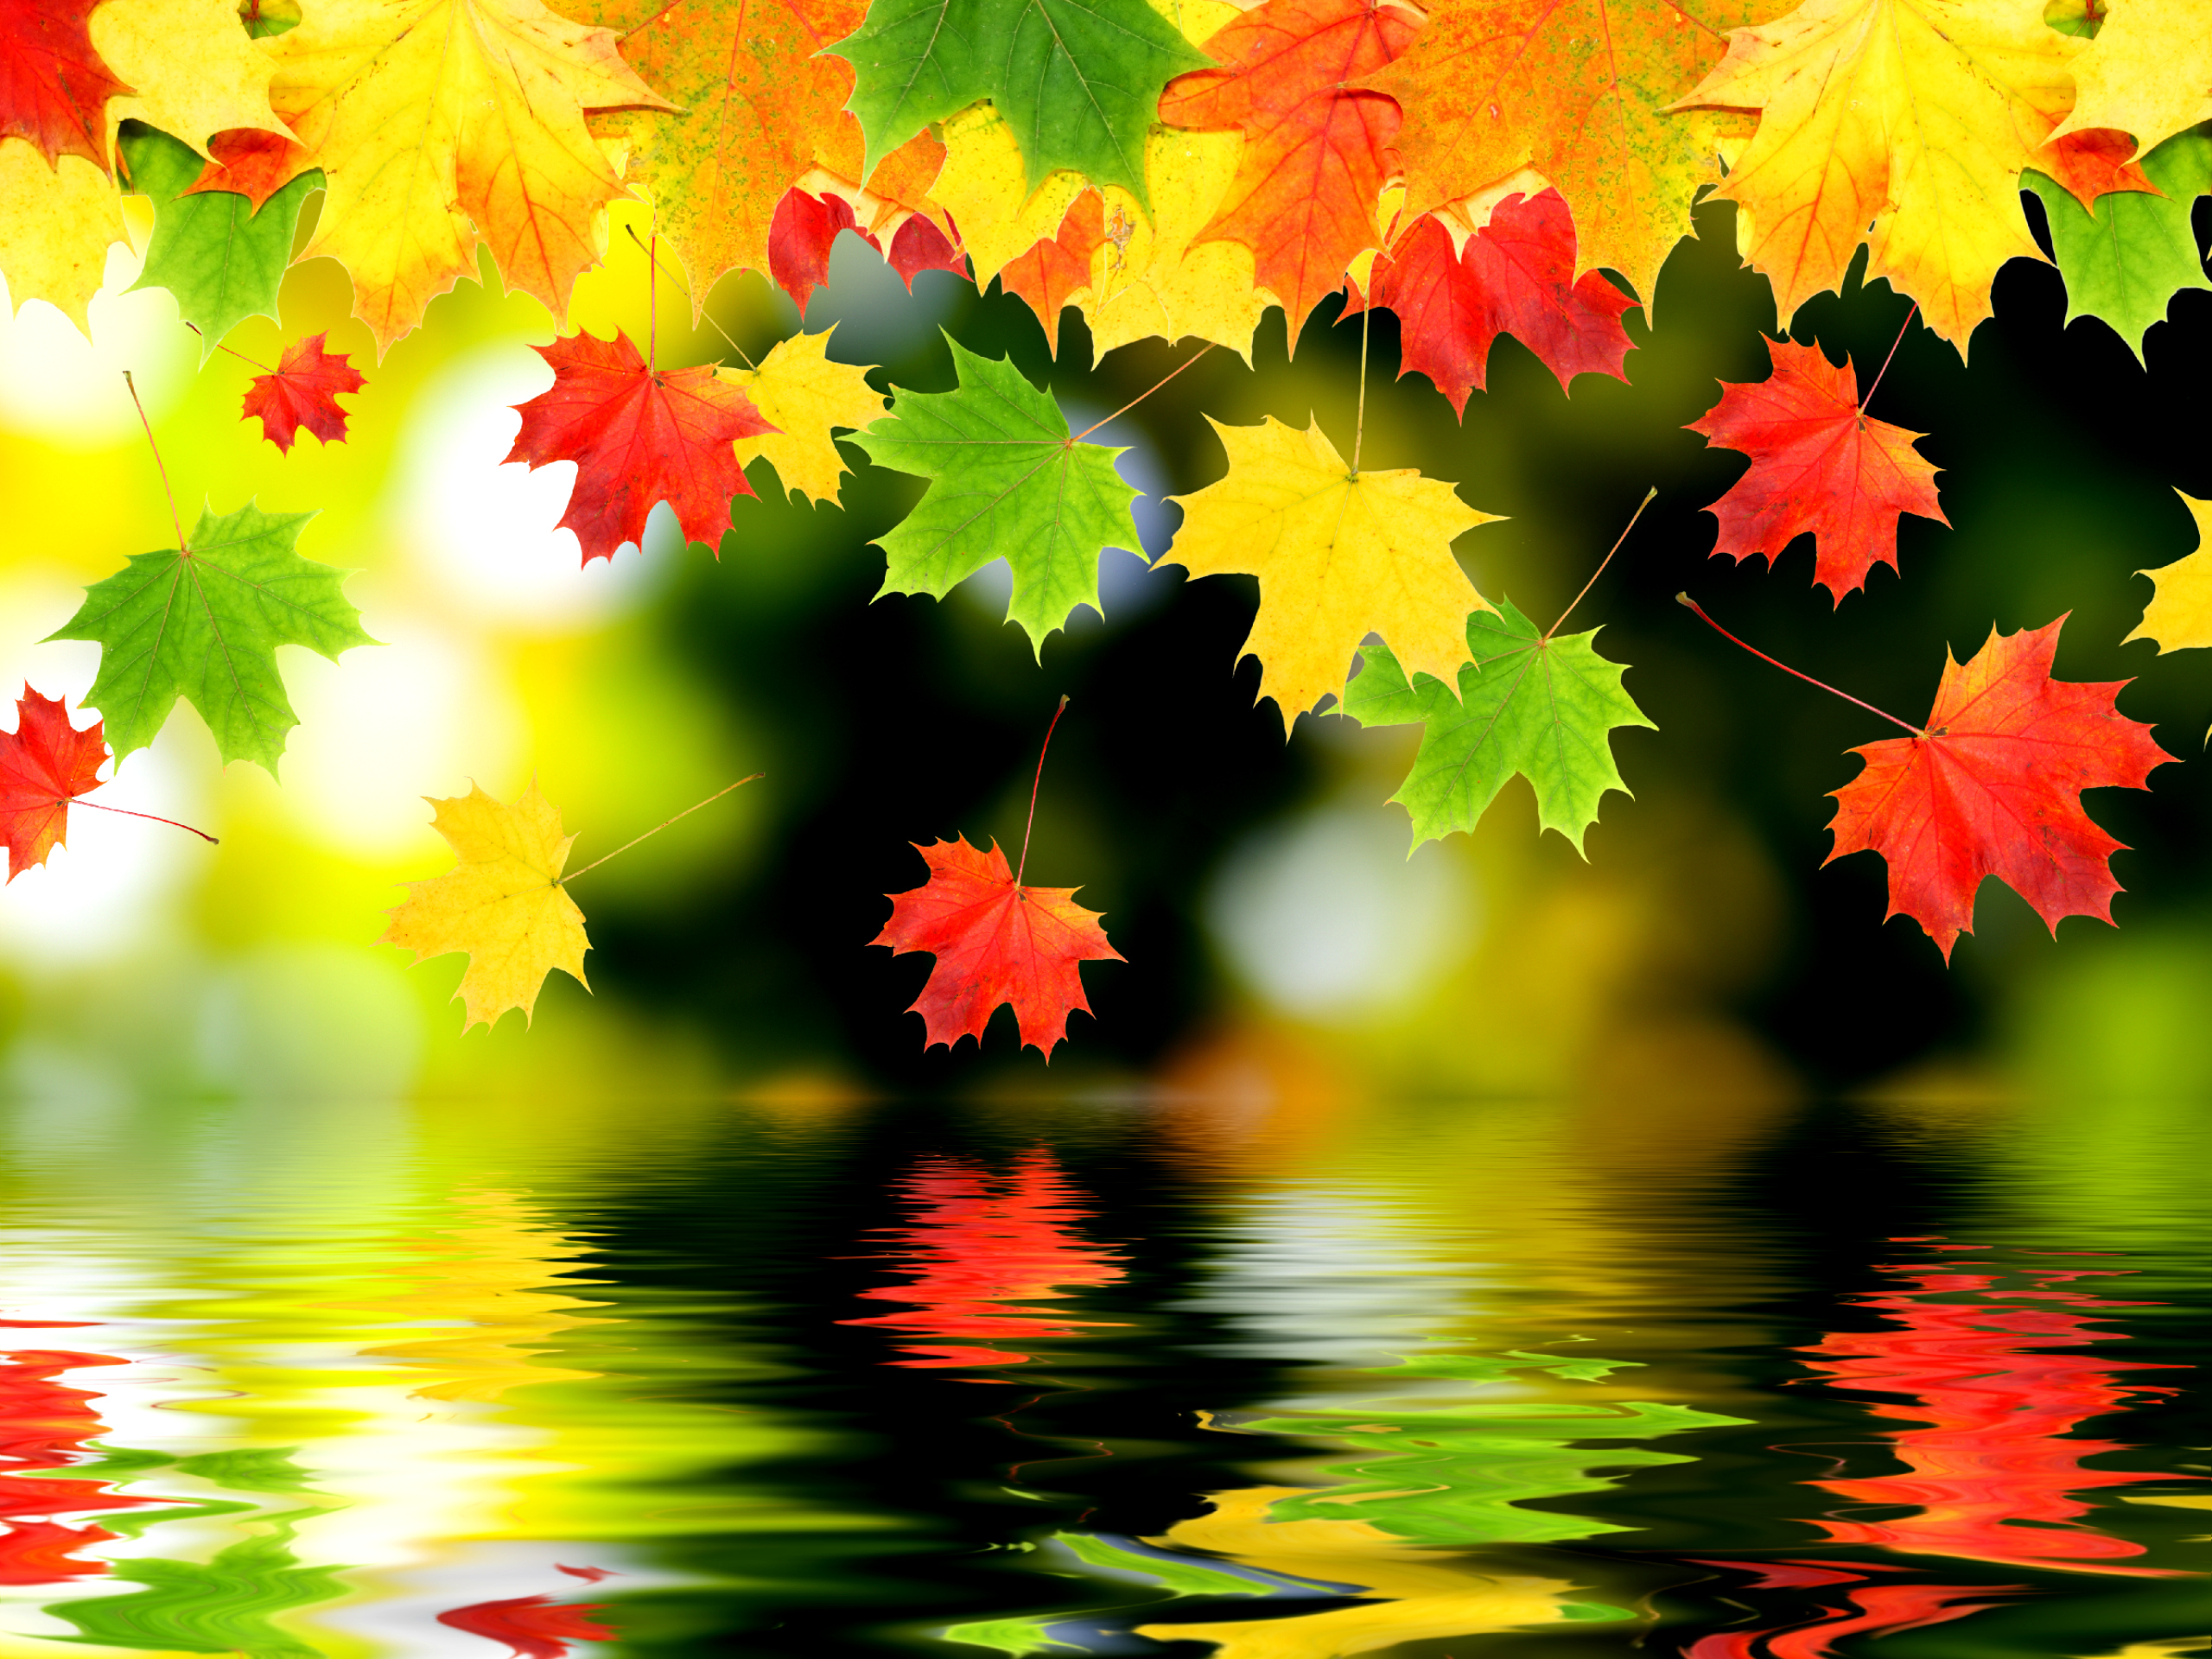 Earth - Autumn  Wallpaper